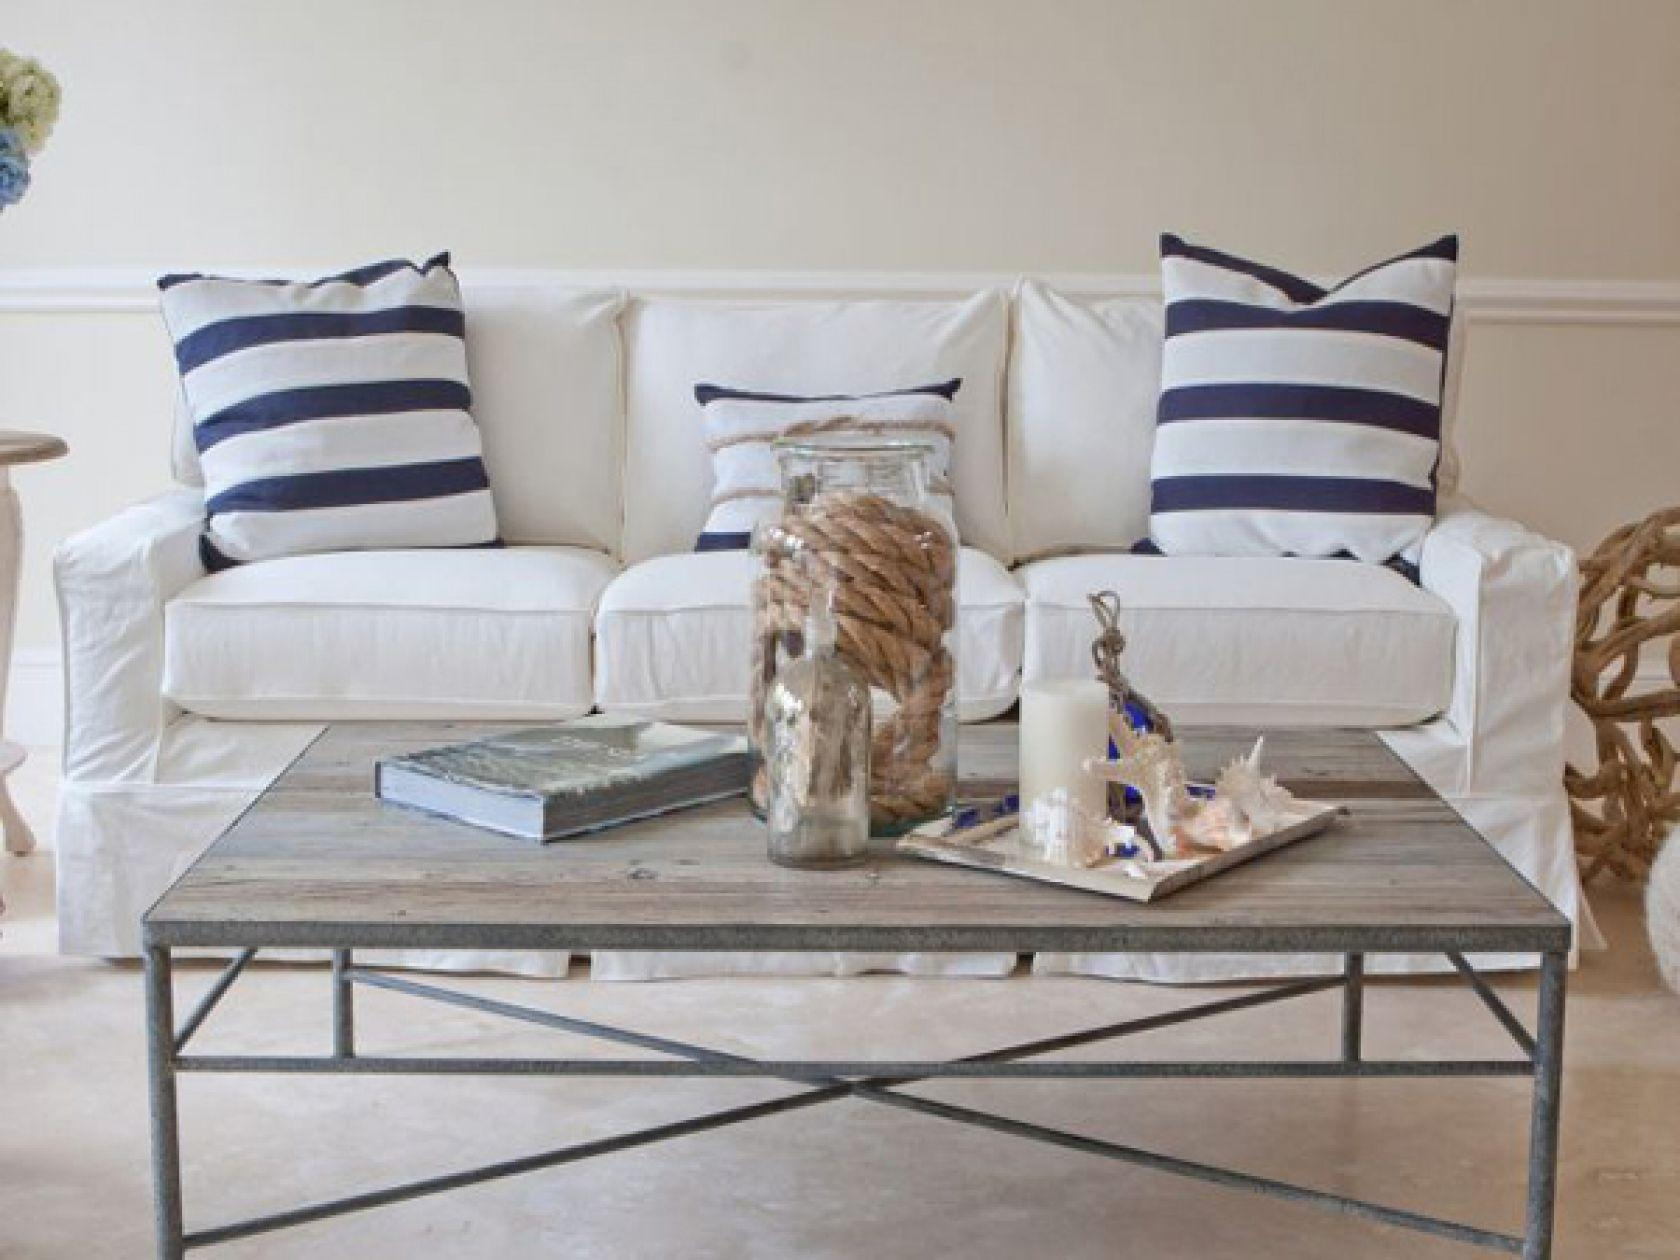 Slipcovered Furniture: Chairs, Sectionals & Sofas In Slipcover Fabrics For Blue And White Striped Sofas (Image 15 of 20)